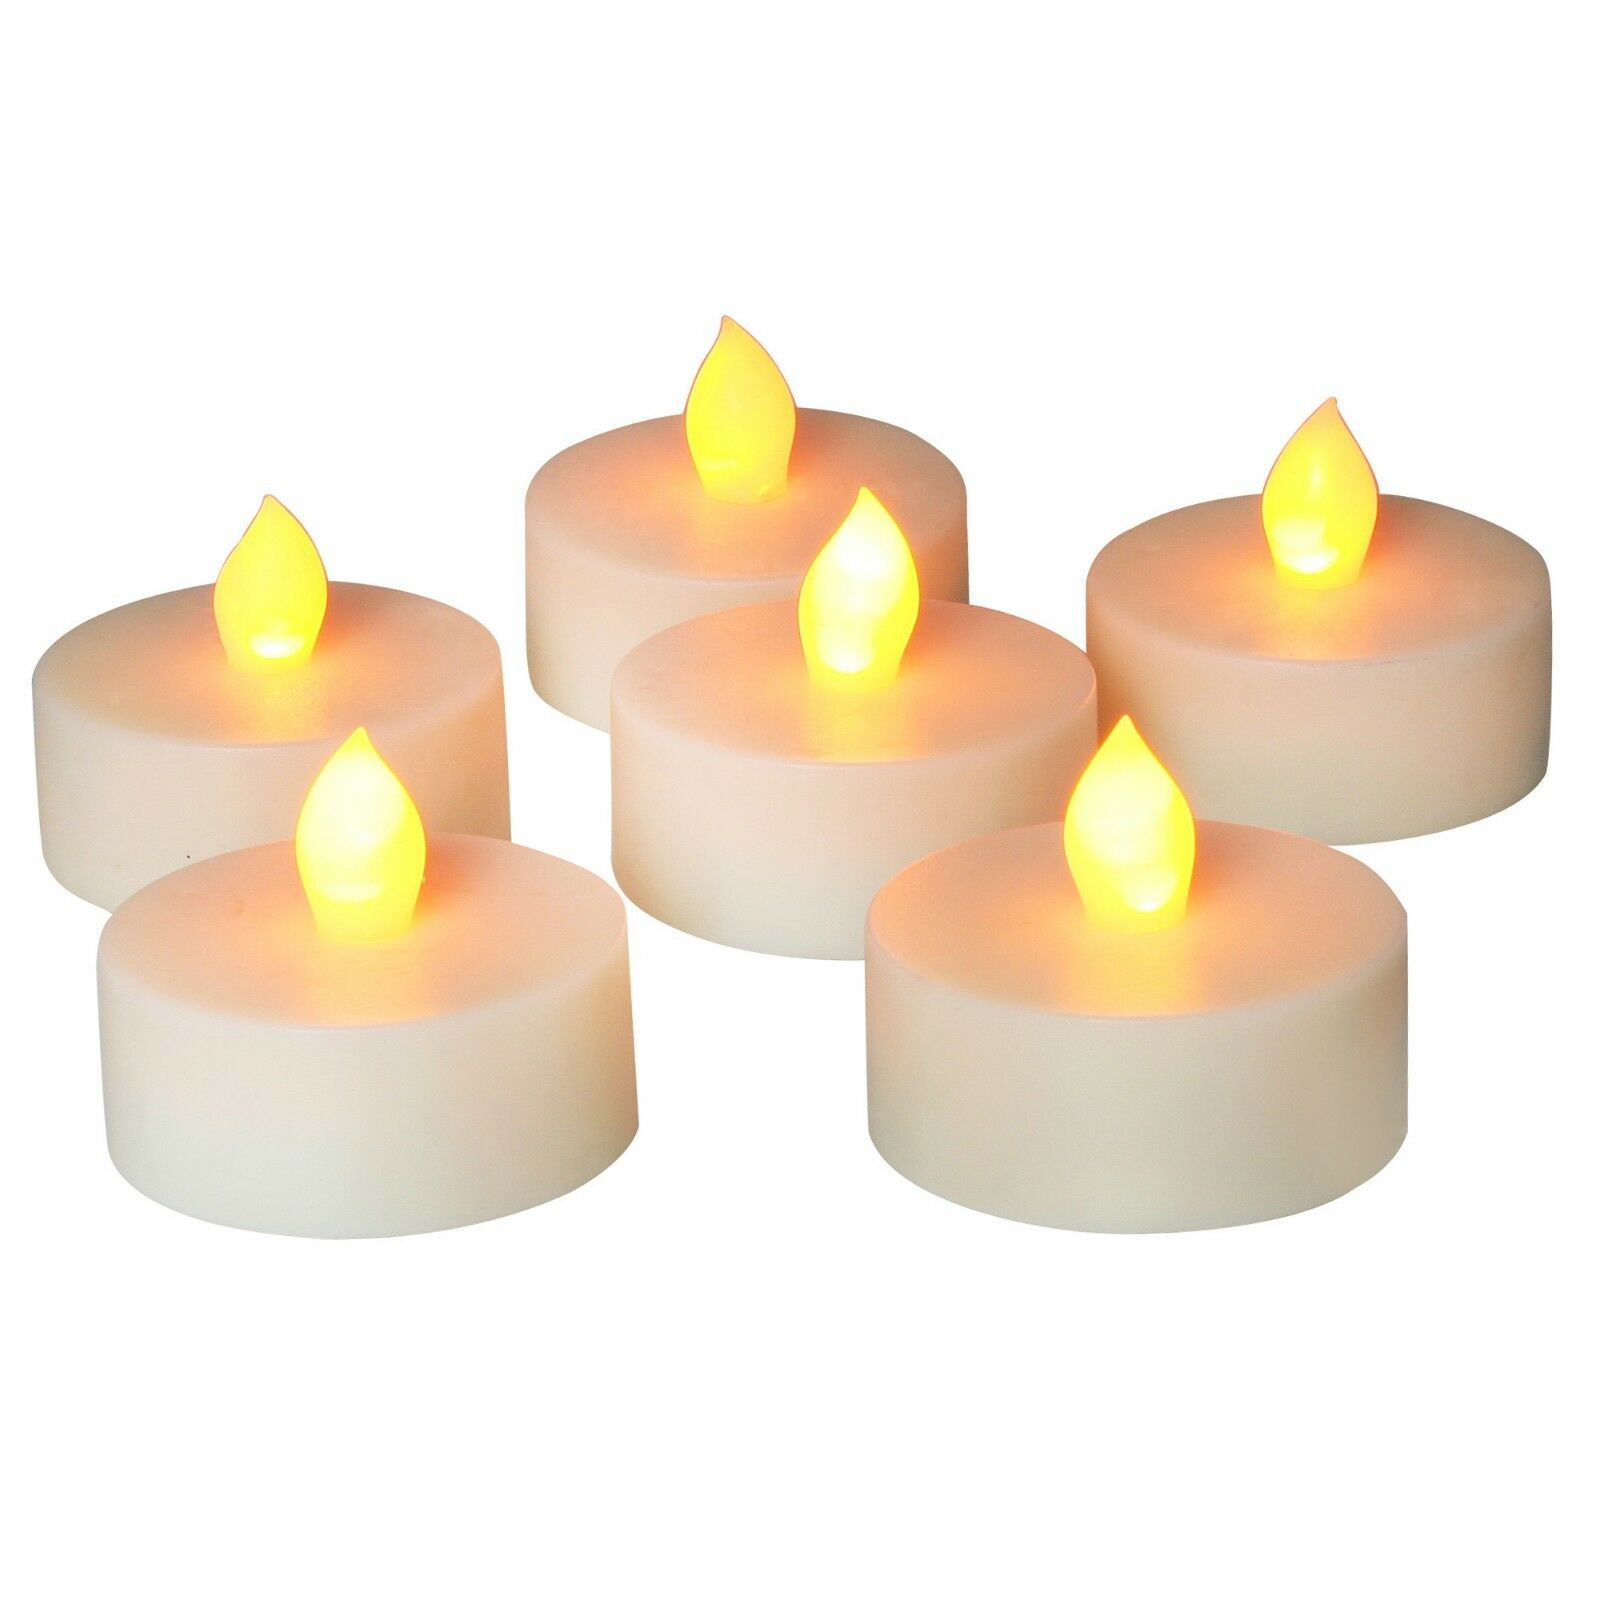 2.15 X 1.51 LED Tea Light with 6 Hour Timer Flameless Flickering Tealight Candles with Timer Cold White Pack of 6 Battery Operated Long Lasting Warm White LED Tea Votive Candle for Decoration